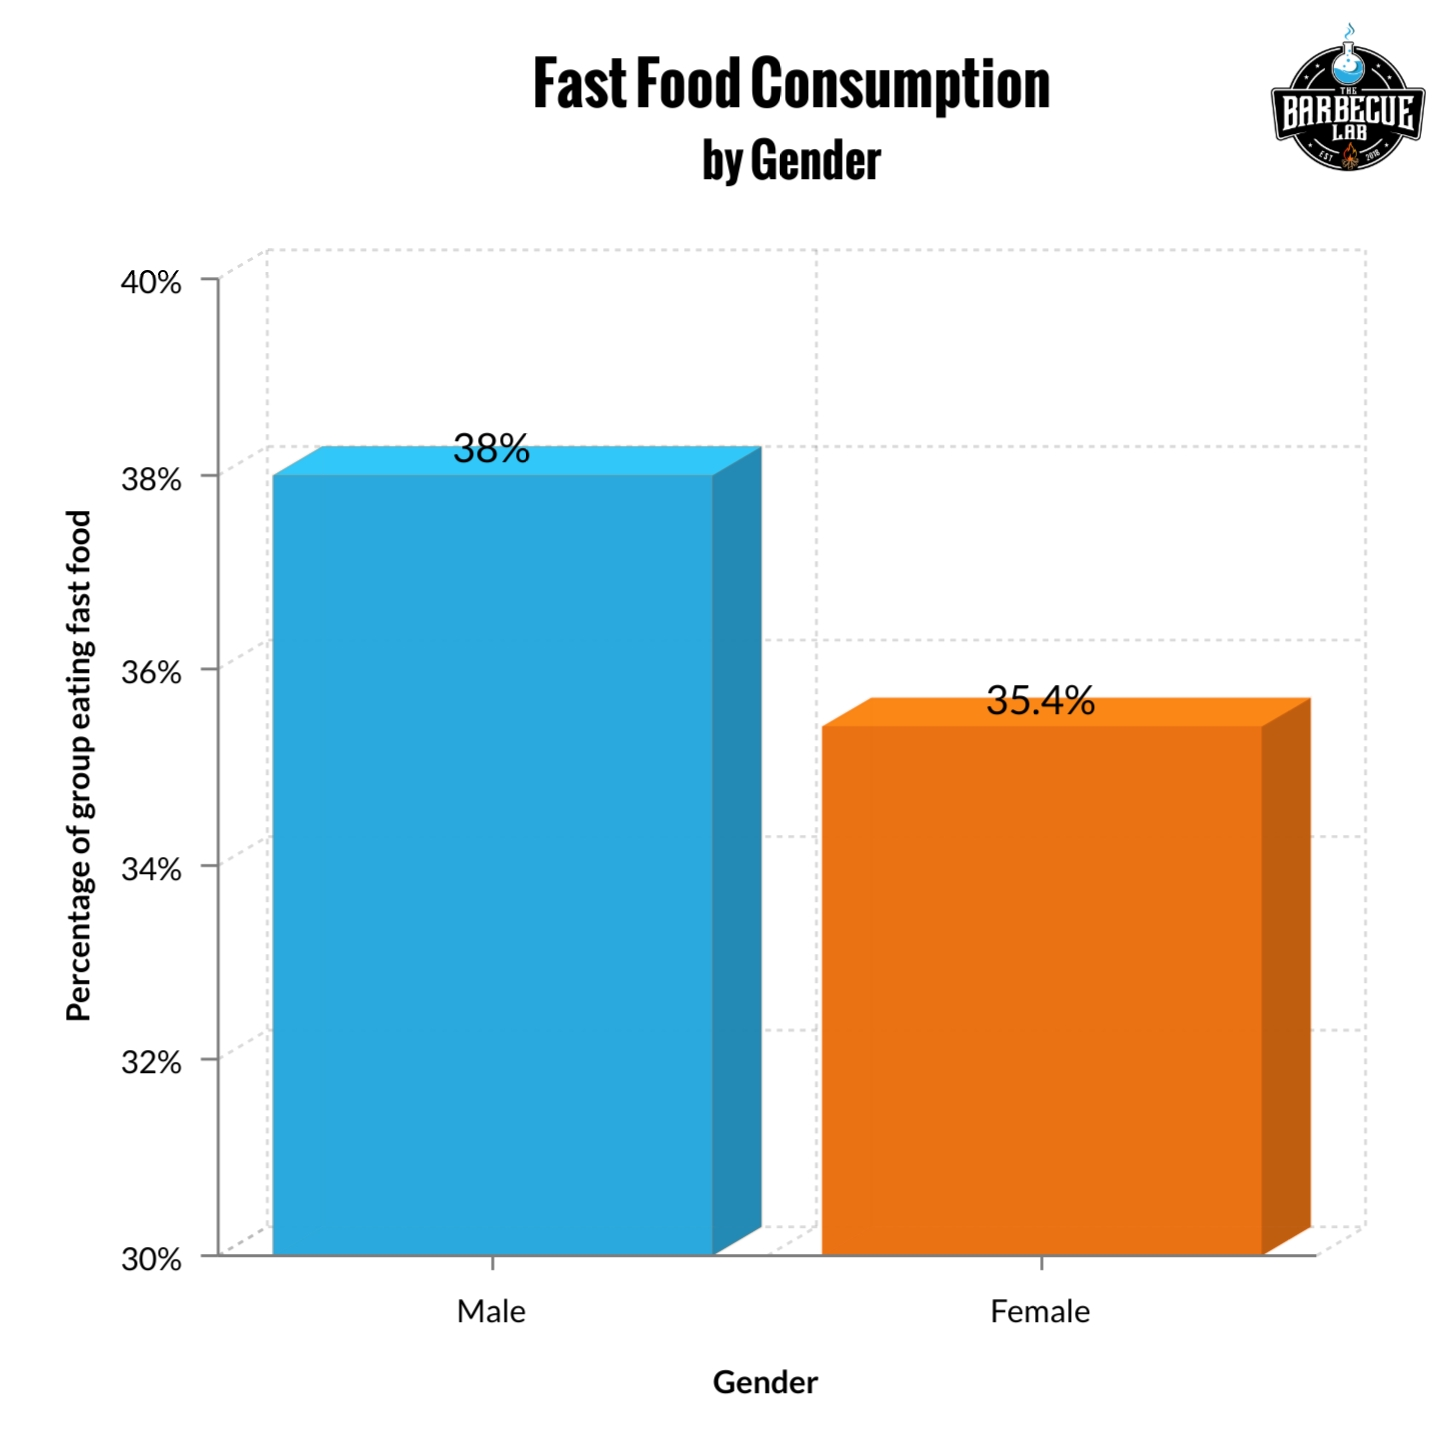 bar graph showing fast food consumption by gender